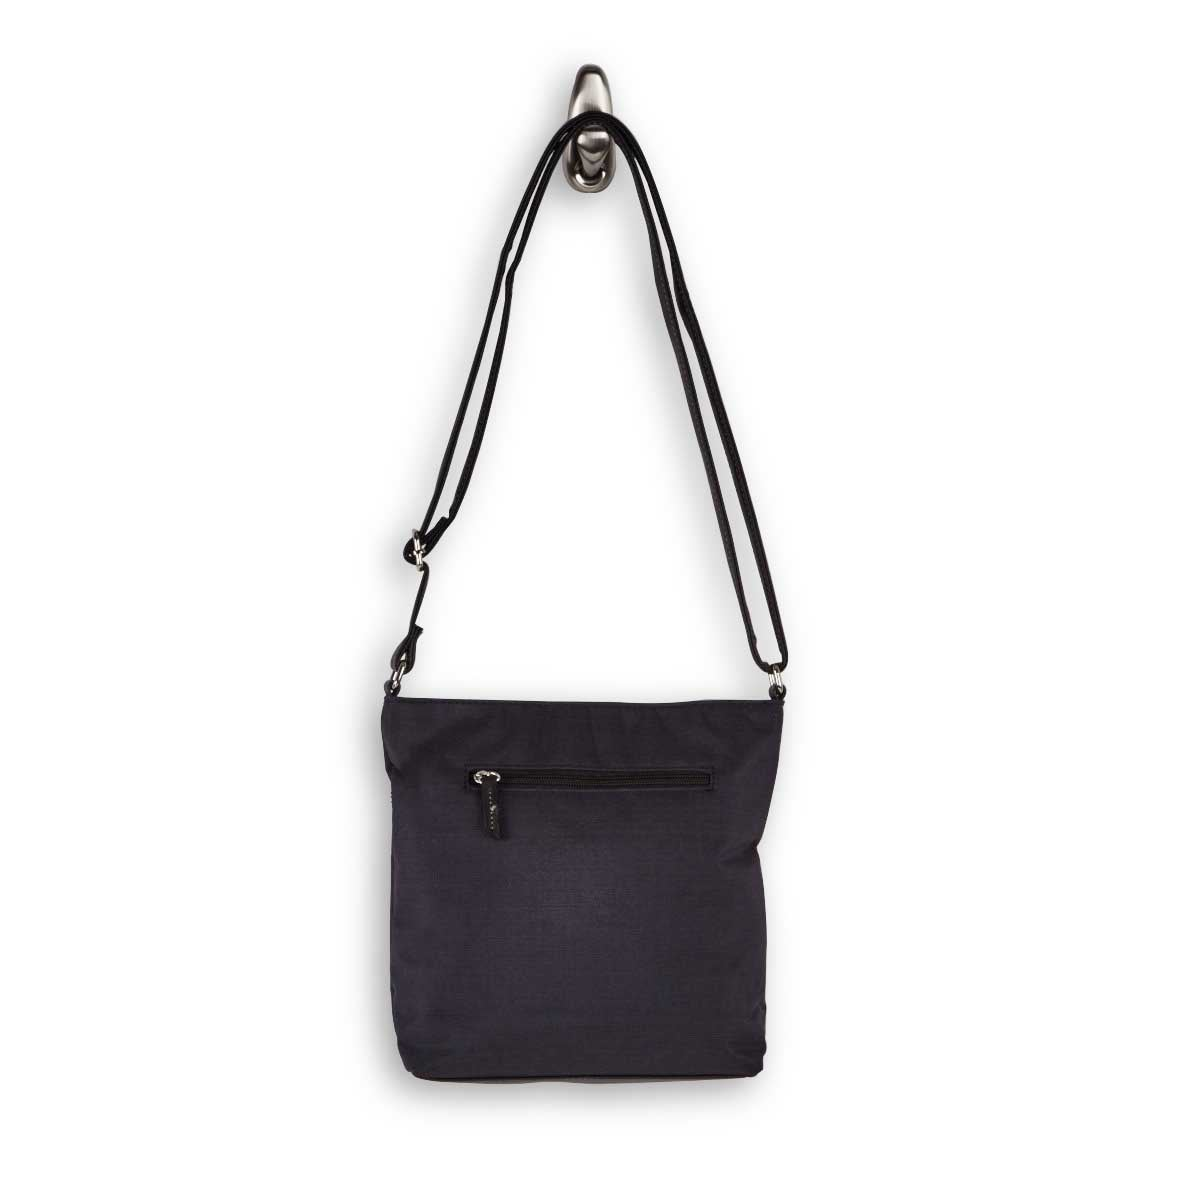 Lds Roots73 black buckled flap crossbody